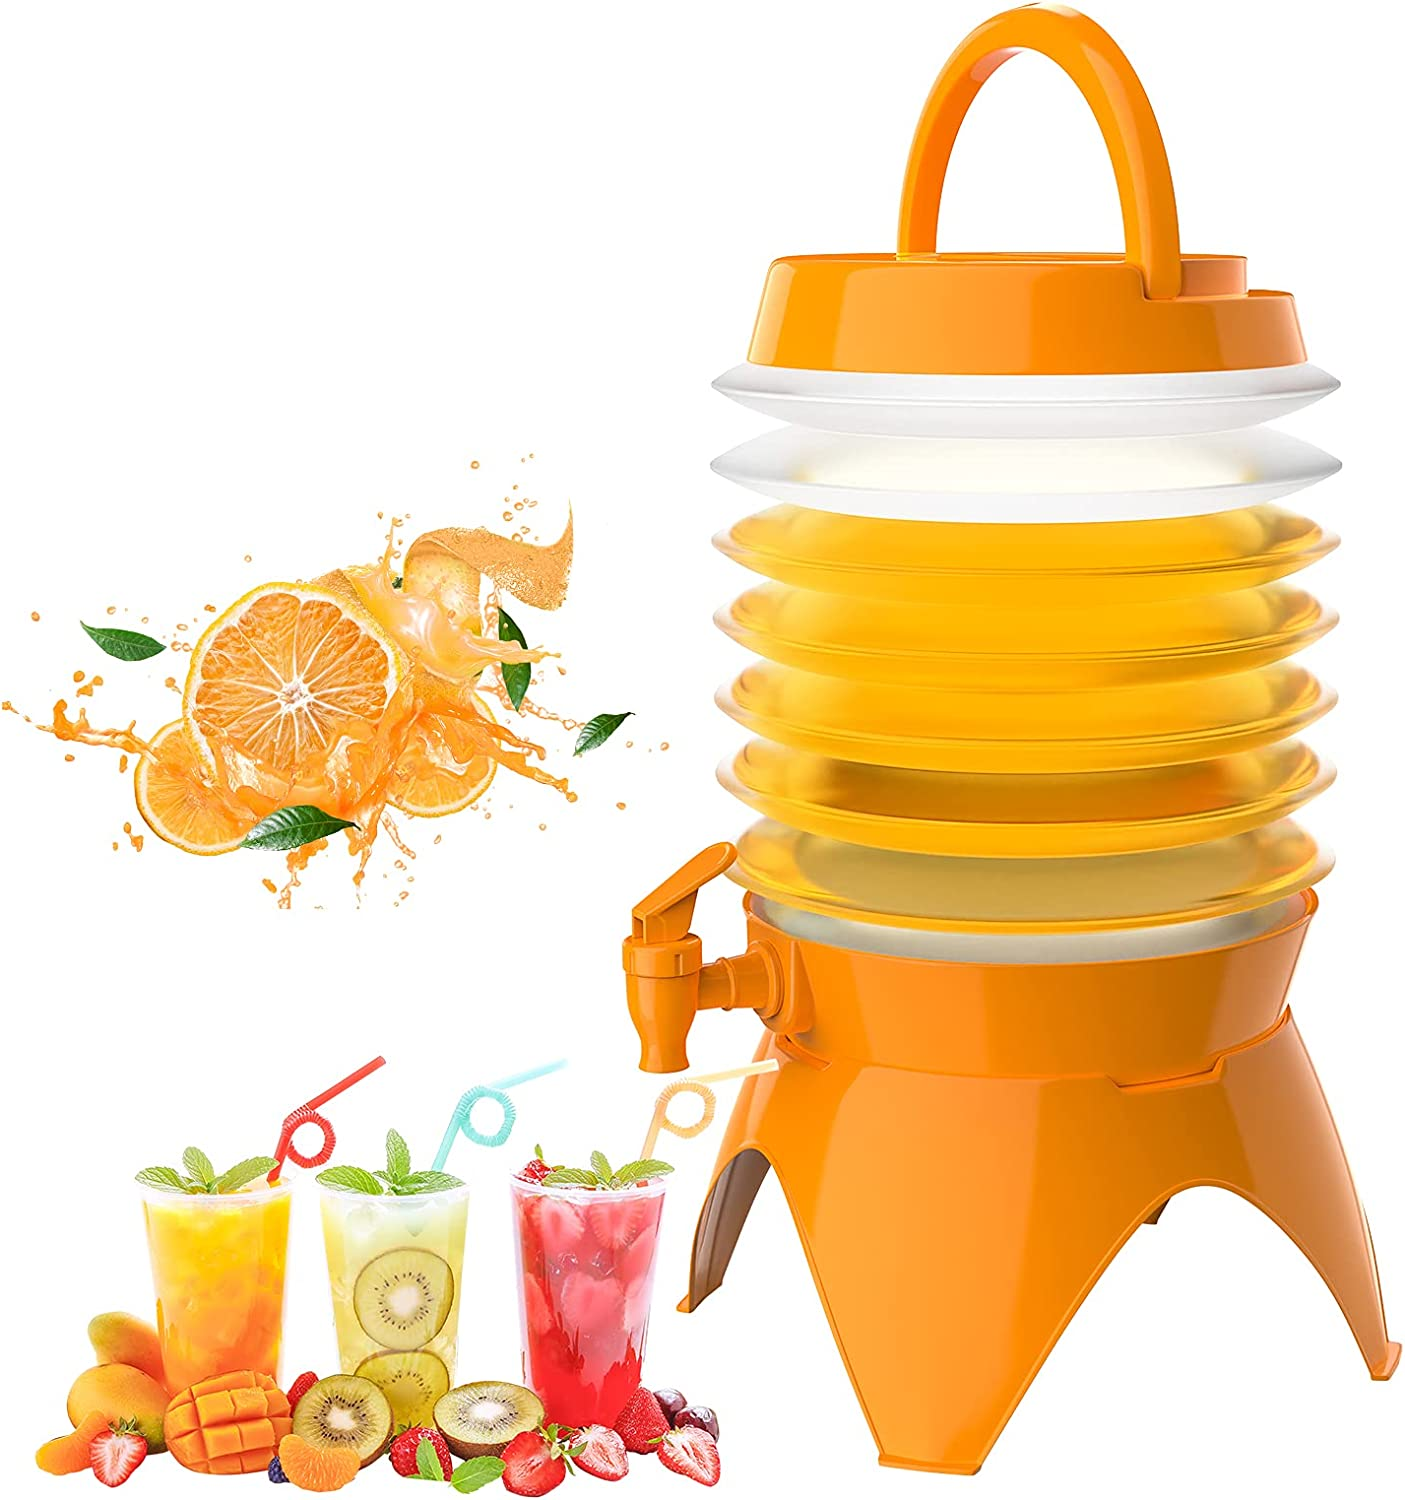 Housolution 1.5 Gallon Beverage Dispenser, Collapsible Drink Dispenser BPA Free Plastic Lemonade Juice Beer Beverage Dispenser Water Container with Stand & Spigot for Party Picnic Outdoor, Orange